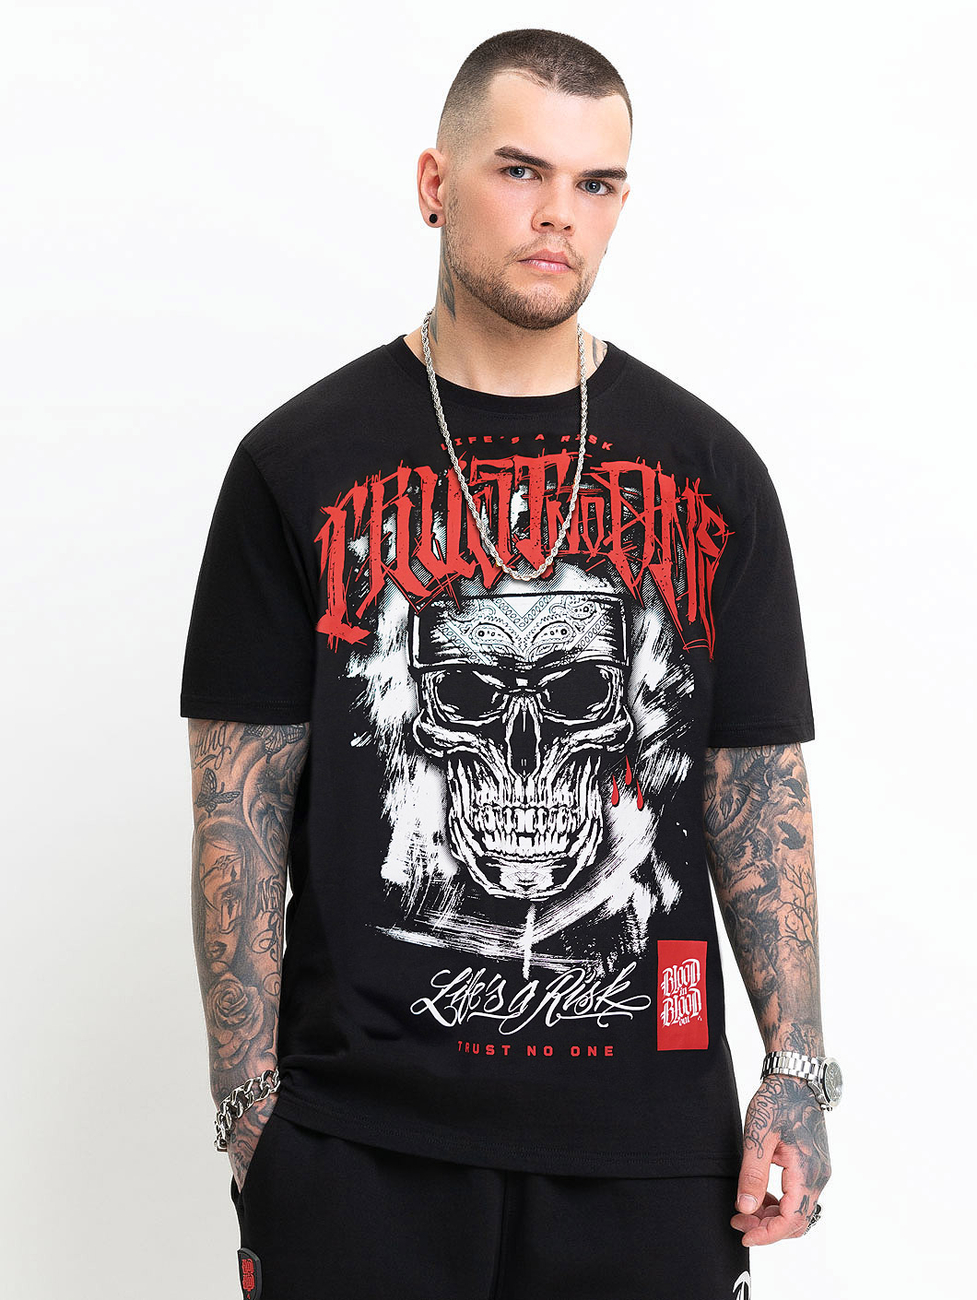 Blood In Blood Out Bandaro T-Shirt S